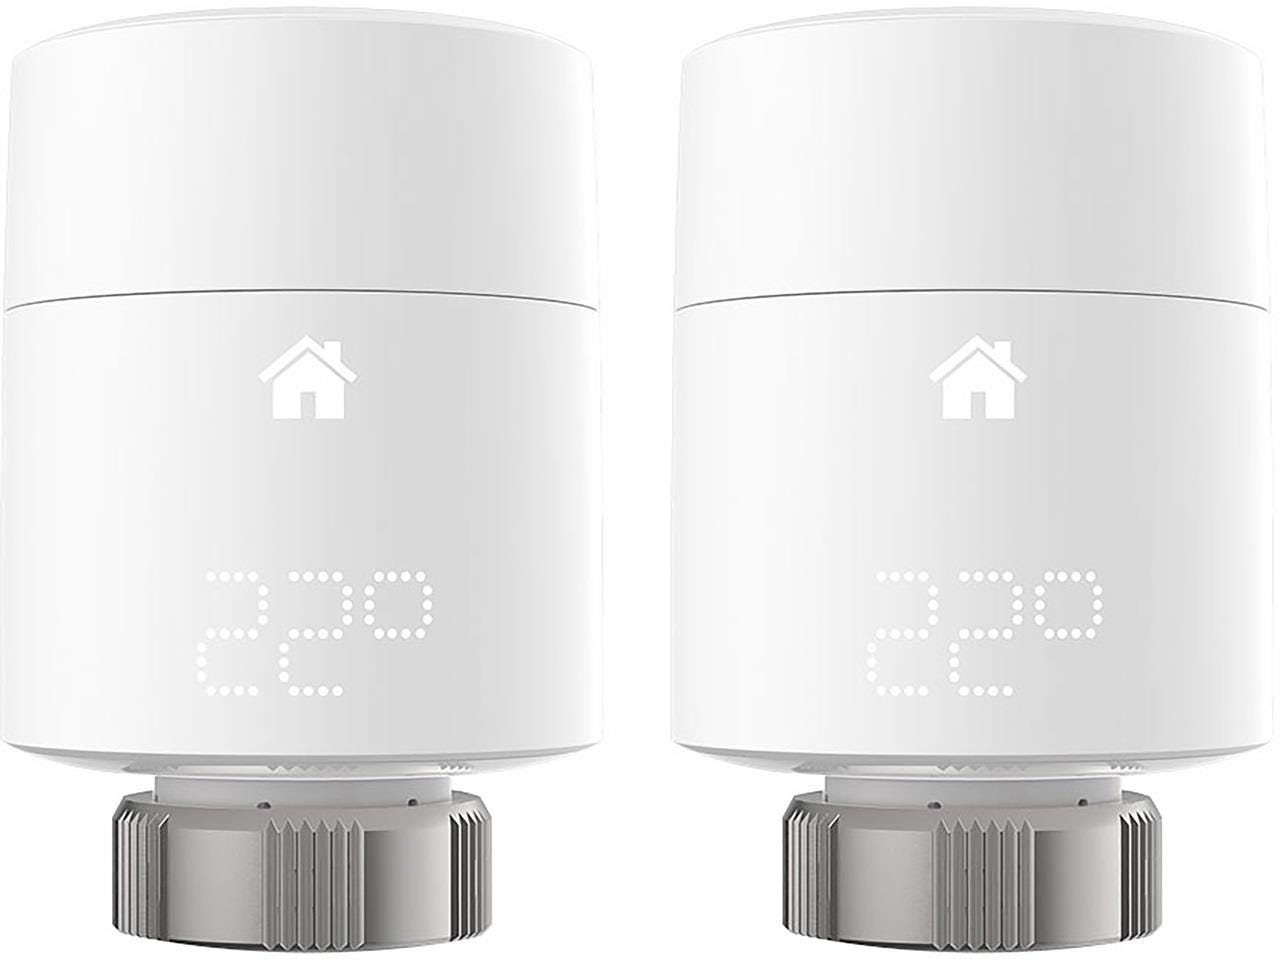 Tado Smart Radiator Thermostats (Vertical Mounting) - Duo Pack